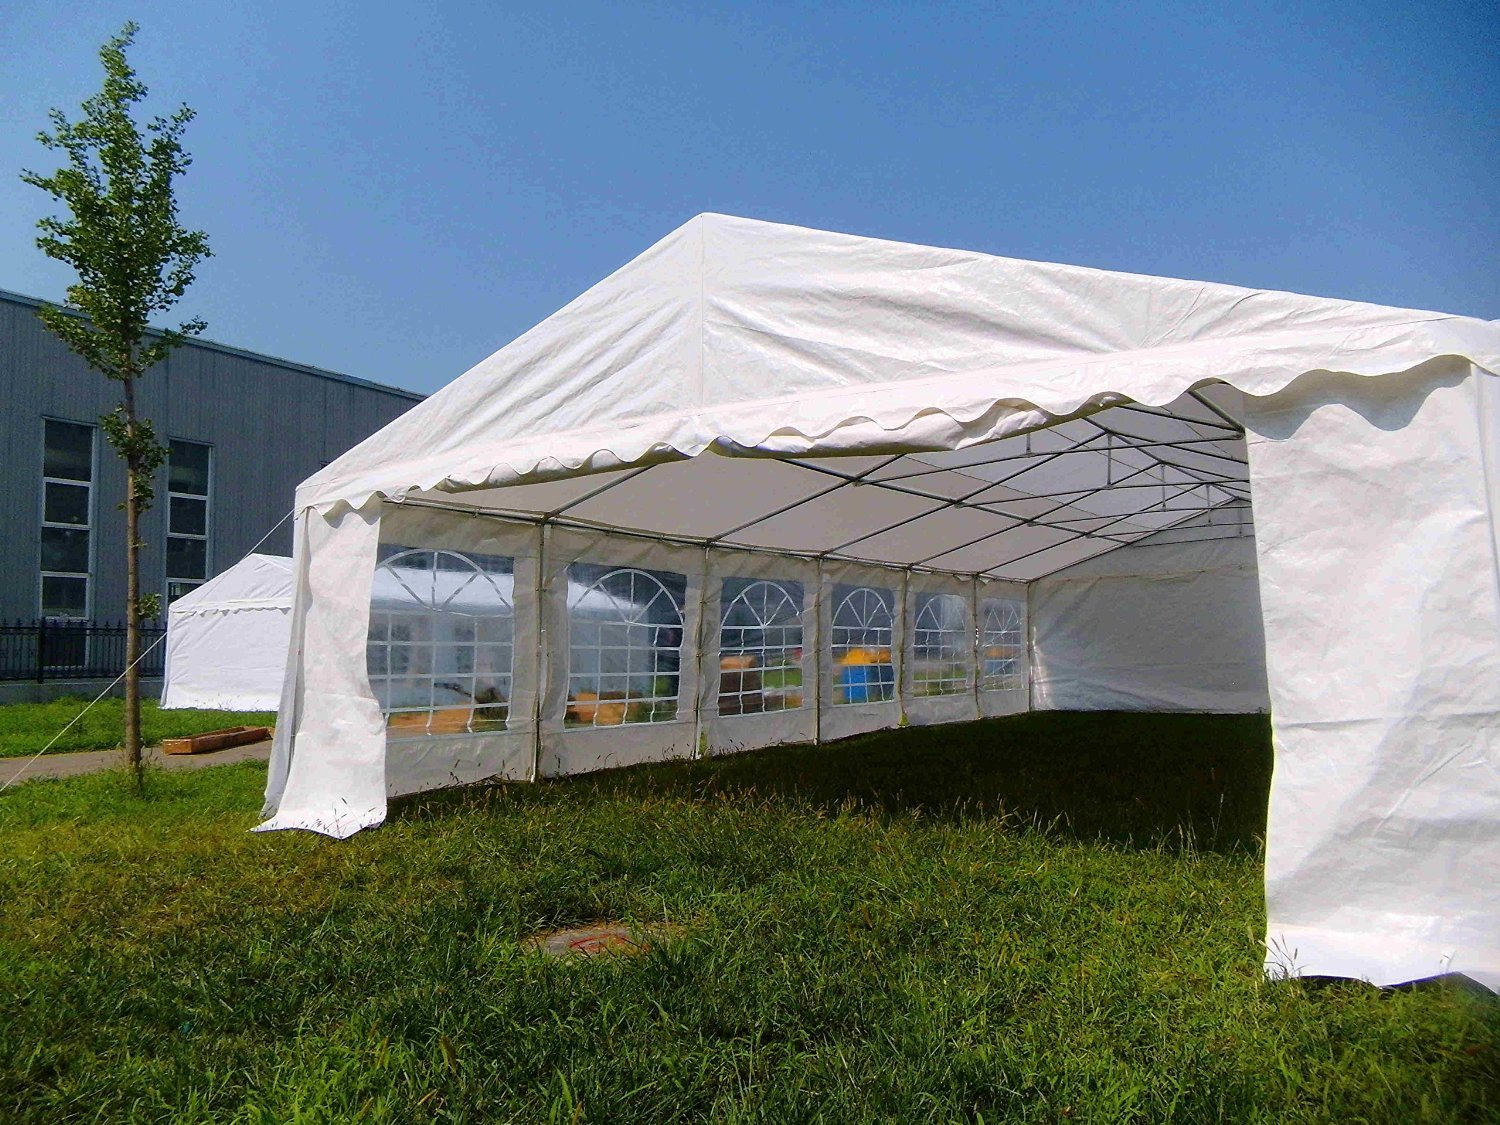 Amazon.com  OTLIVE 20x40 Foot Wedding Party White Gazebo Event Tent Storage Shed Car Shelter Heavy Duty Pavilion (White)  Garden u0026 Outdoor : 20 x 40 canopy tent - memphite.com